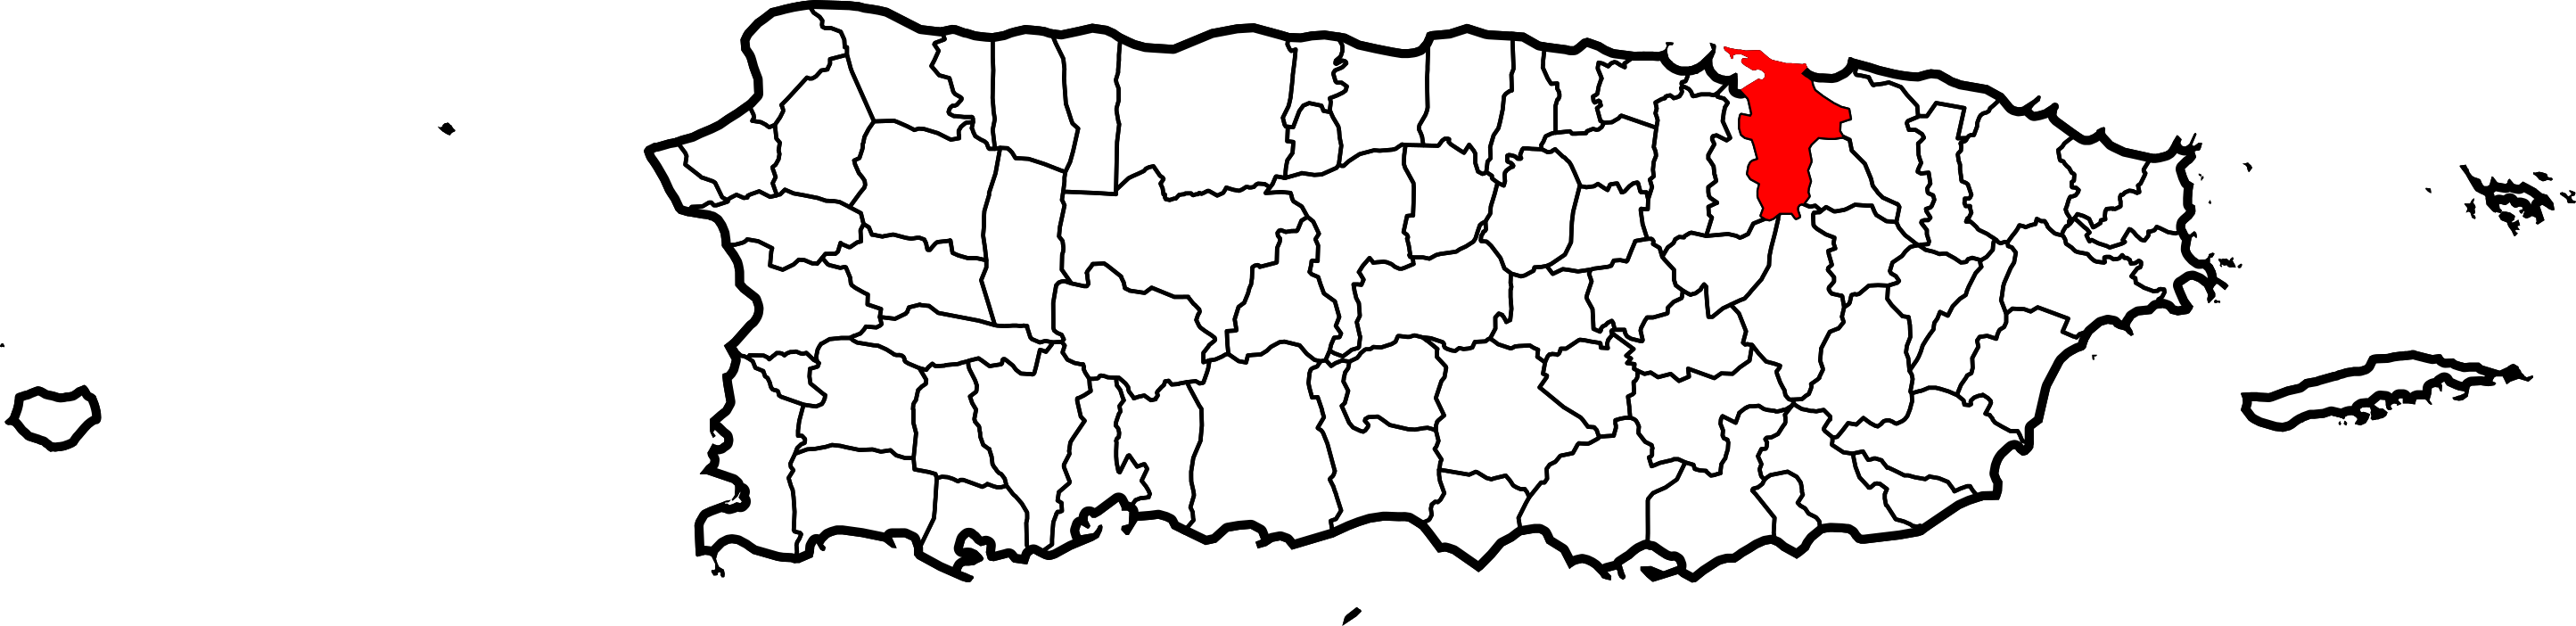 Puerto rico map png. File of highlighting san